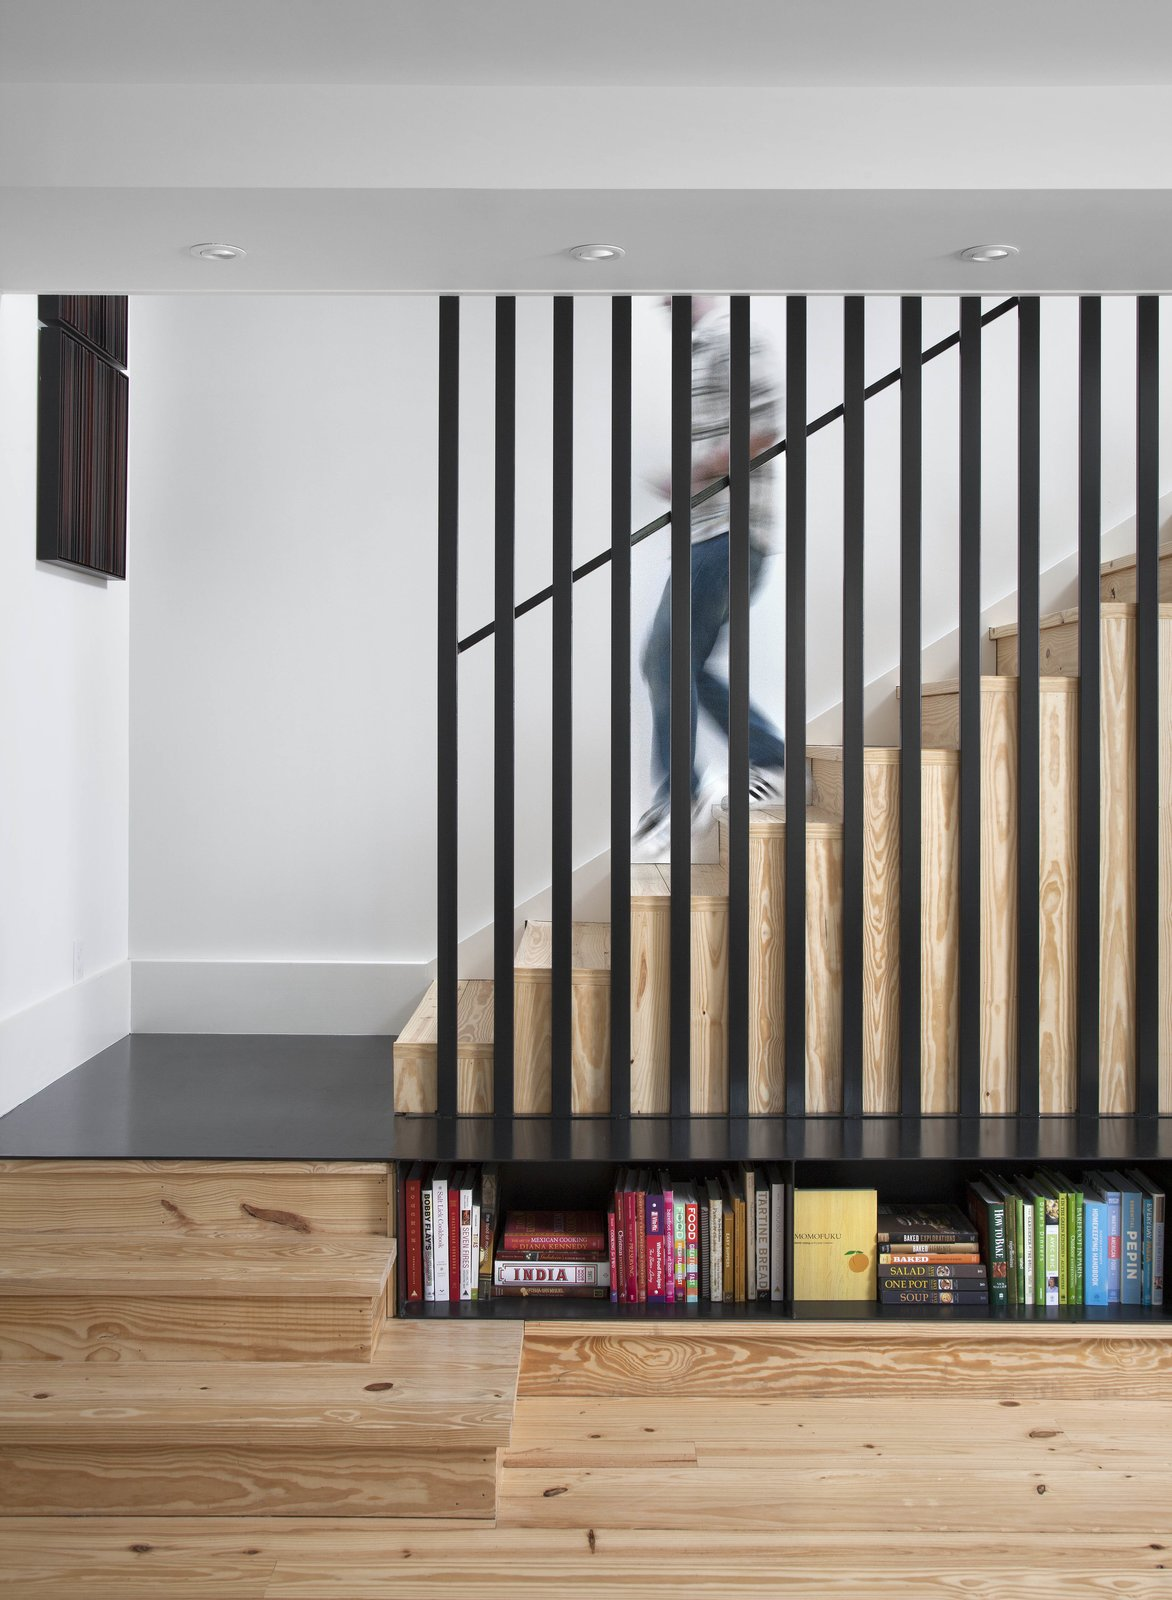 """The caged staircase was designed by architect Patrick Ousey, with whom Flournoy collaborated in the home's design. Although initially unconvinced by the staircase detail, """"it is a great example of how collaboration brings in different perspectives,"""" says Flournoy."""